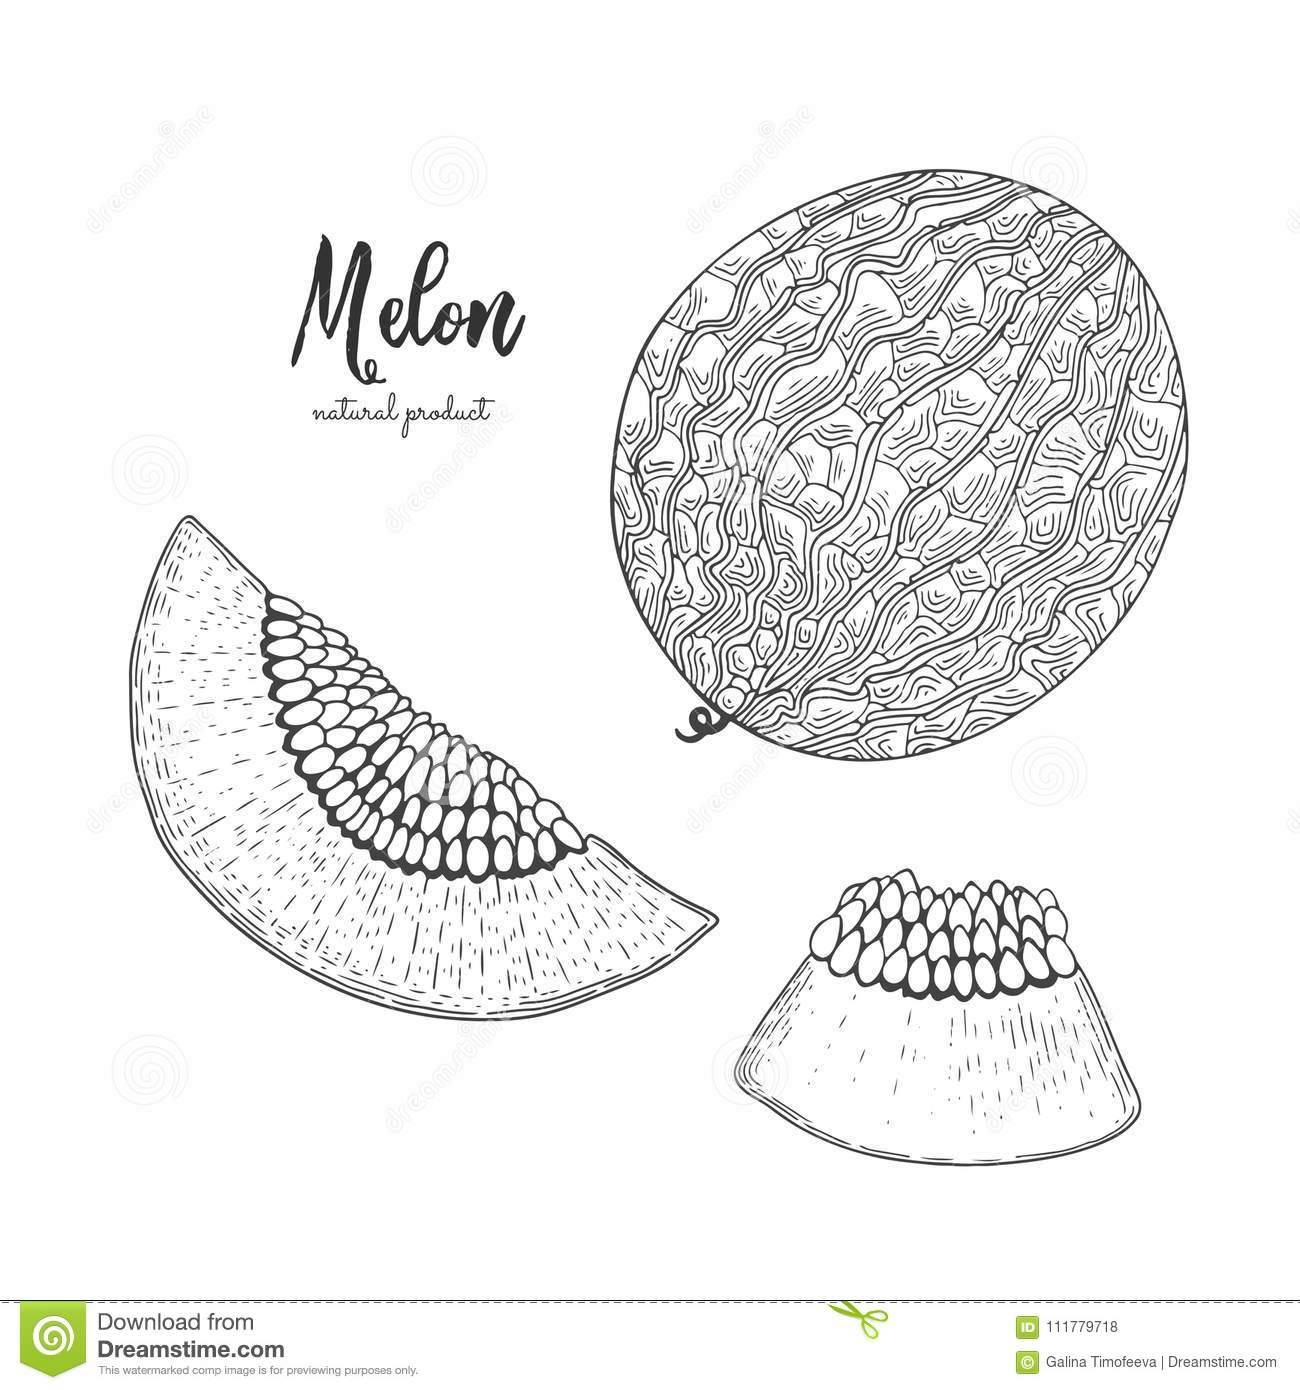 Hand drawn illustration of melon isolated on white background. Engraved style illustration. Detailed vegetarian food